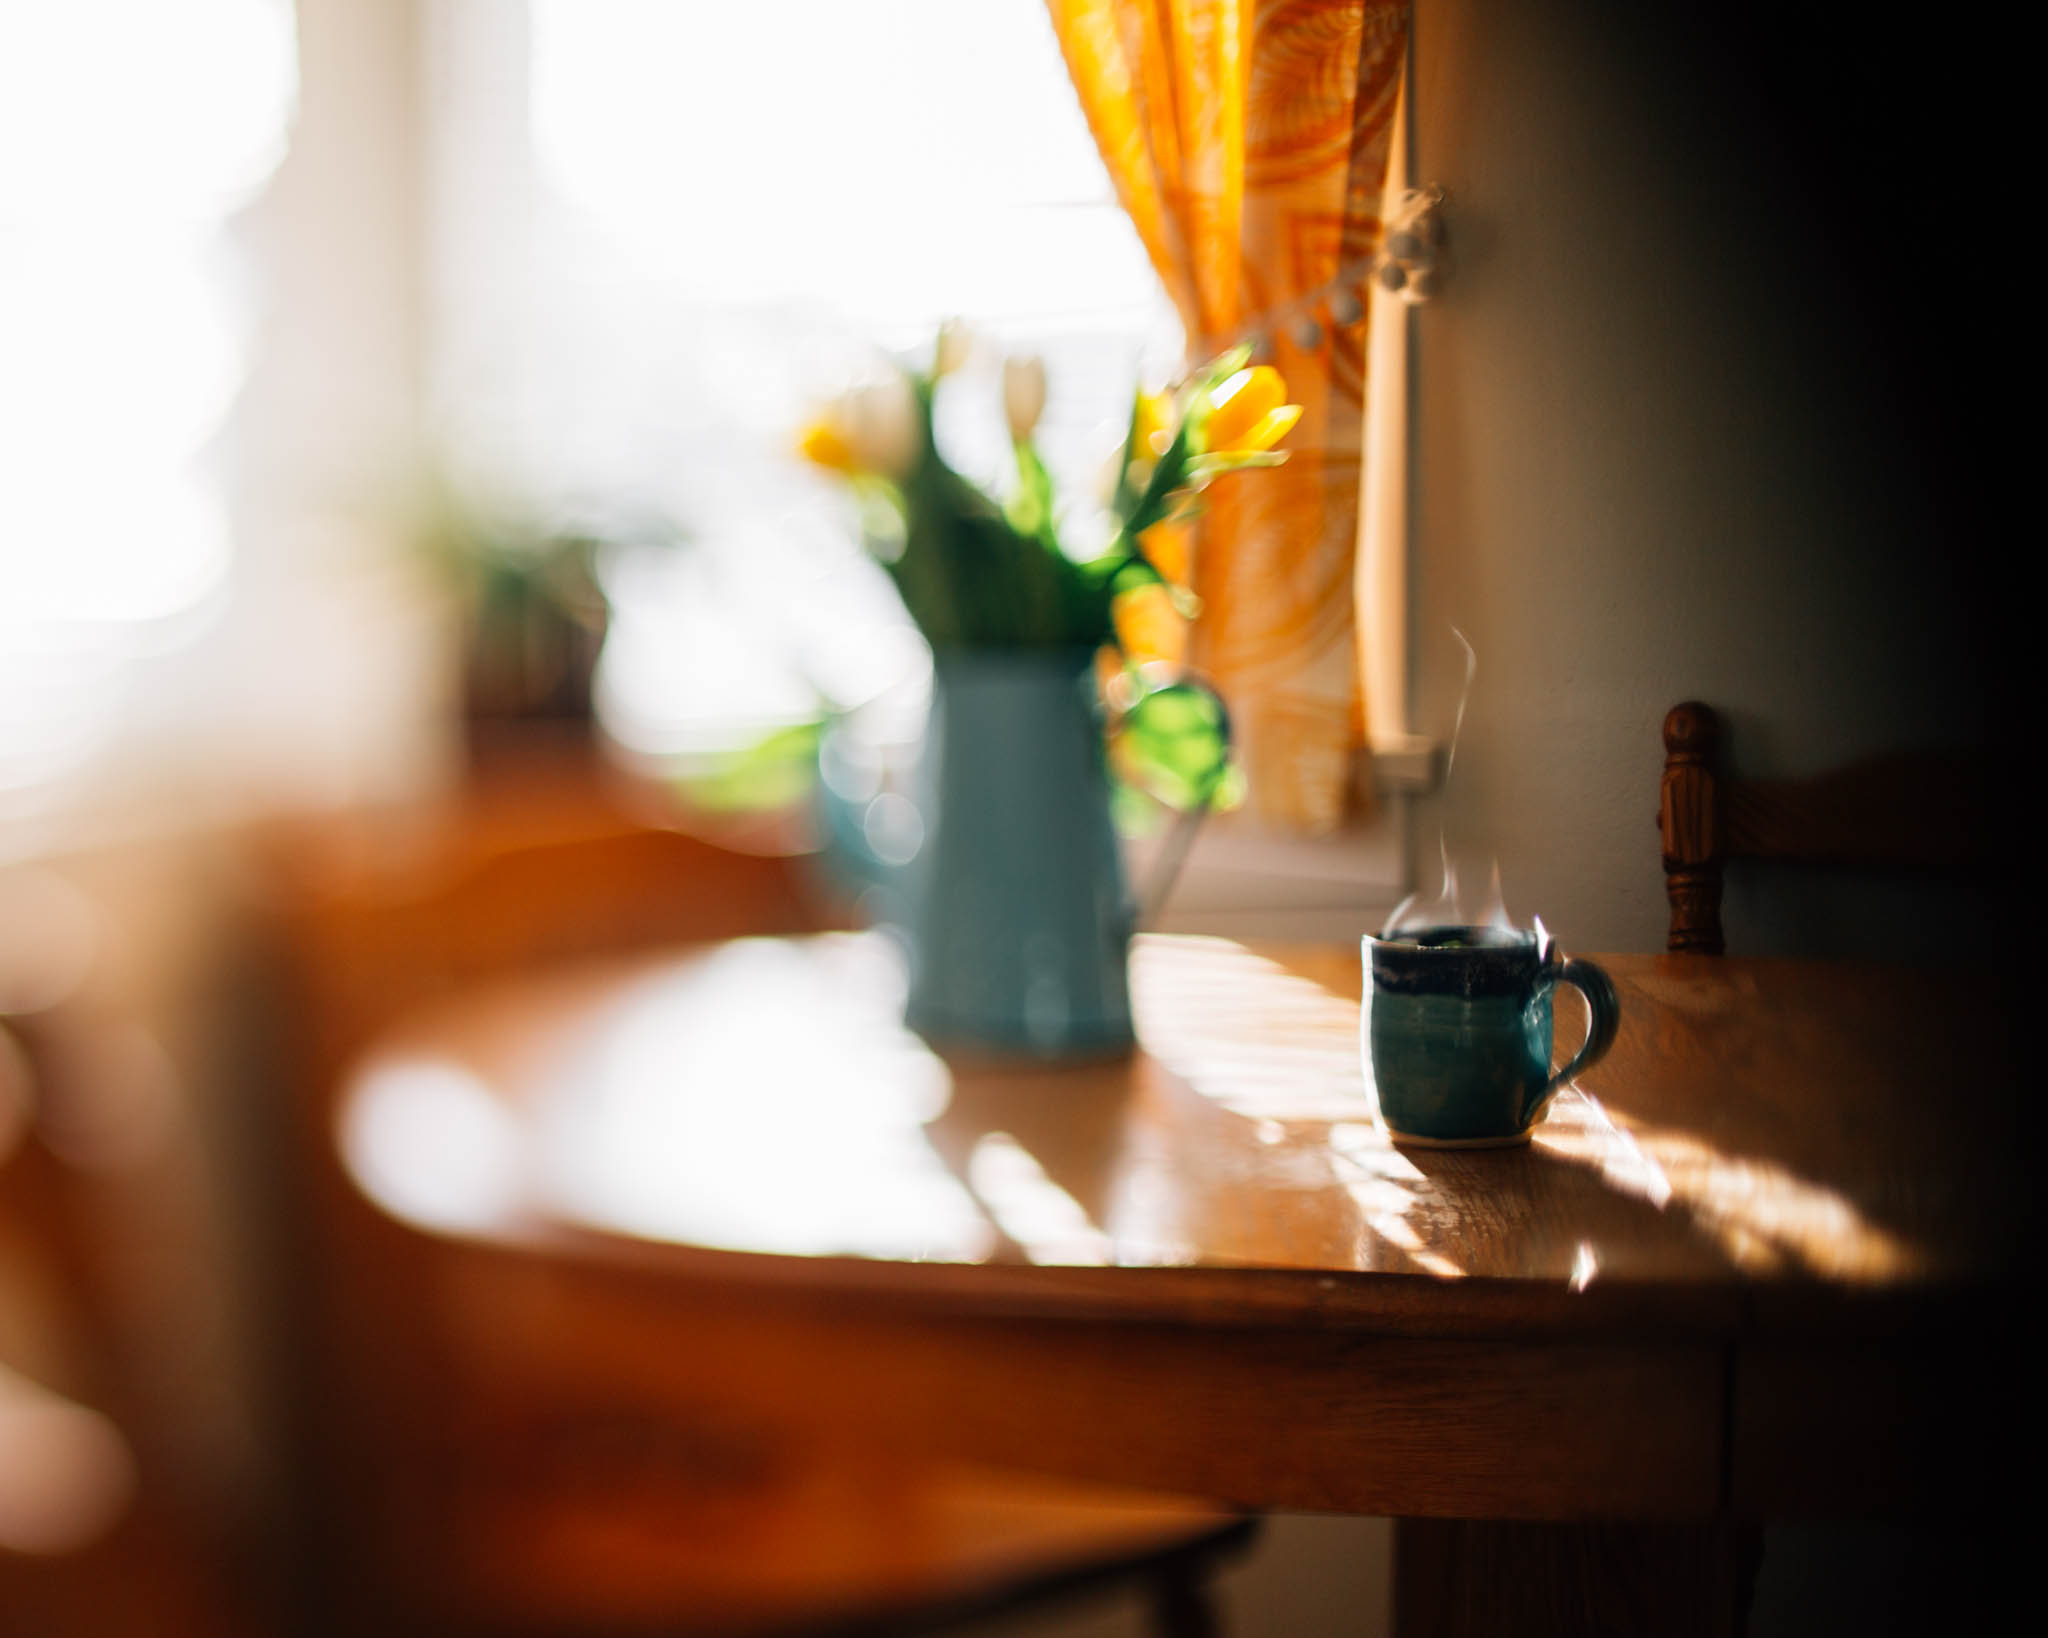 flowers and steaming cup in sunshine freelensed